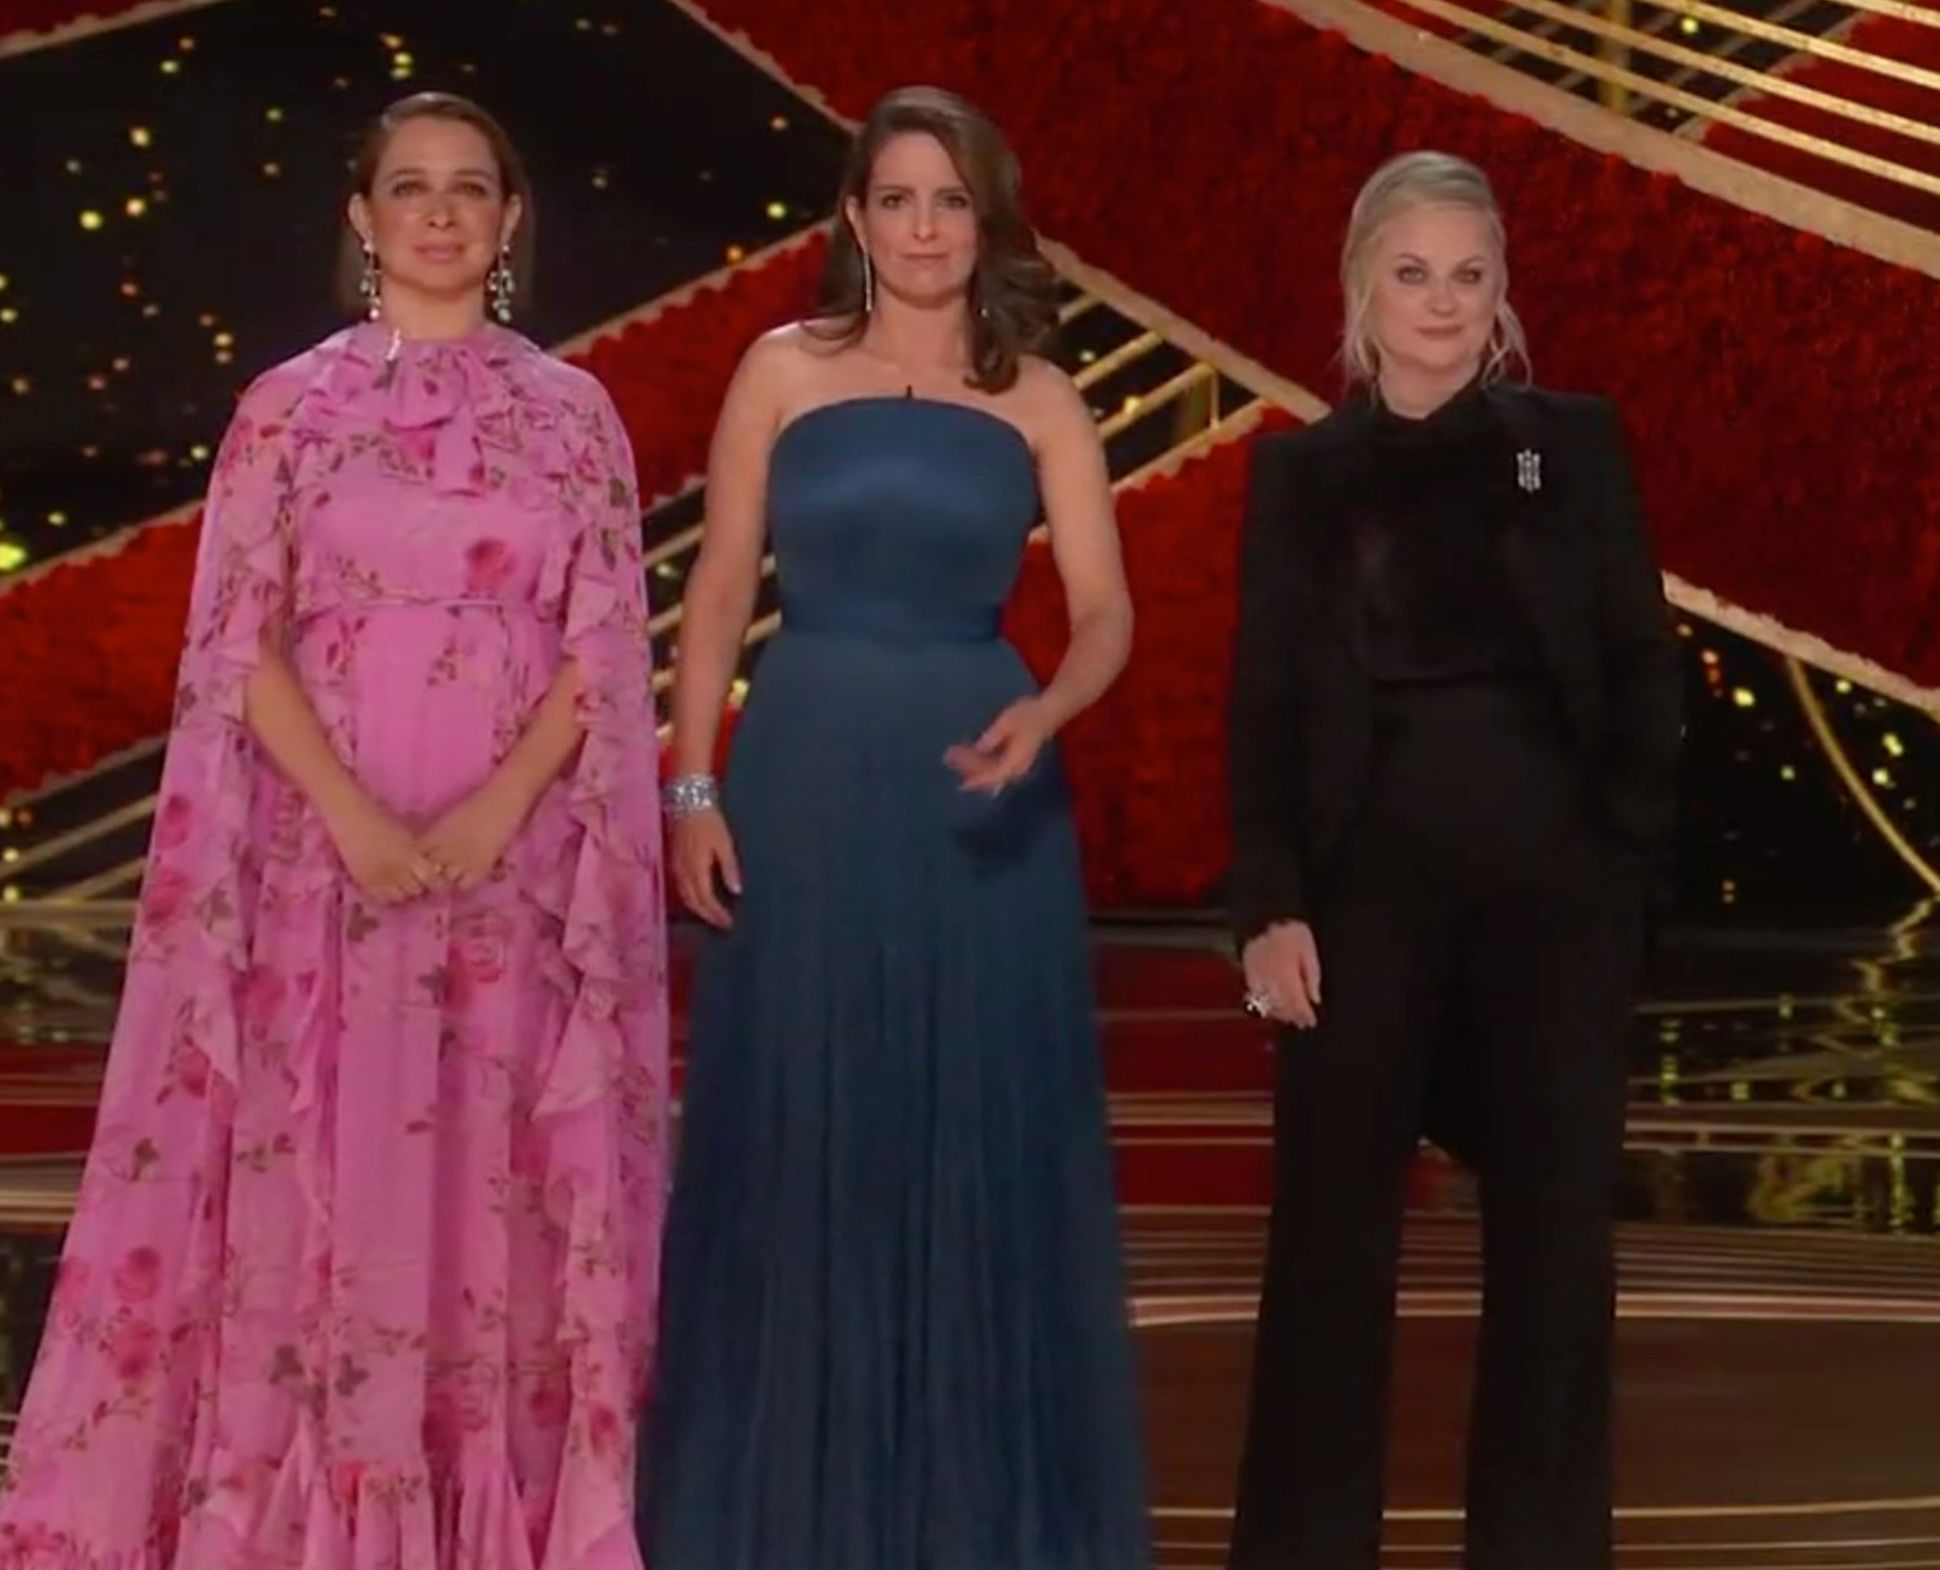 Tina Fey, Amy Poehler And Maya Rudolph, The Hosts We Deserve, Open The